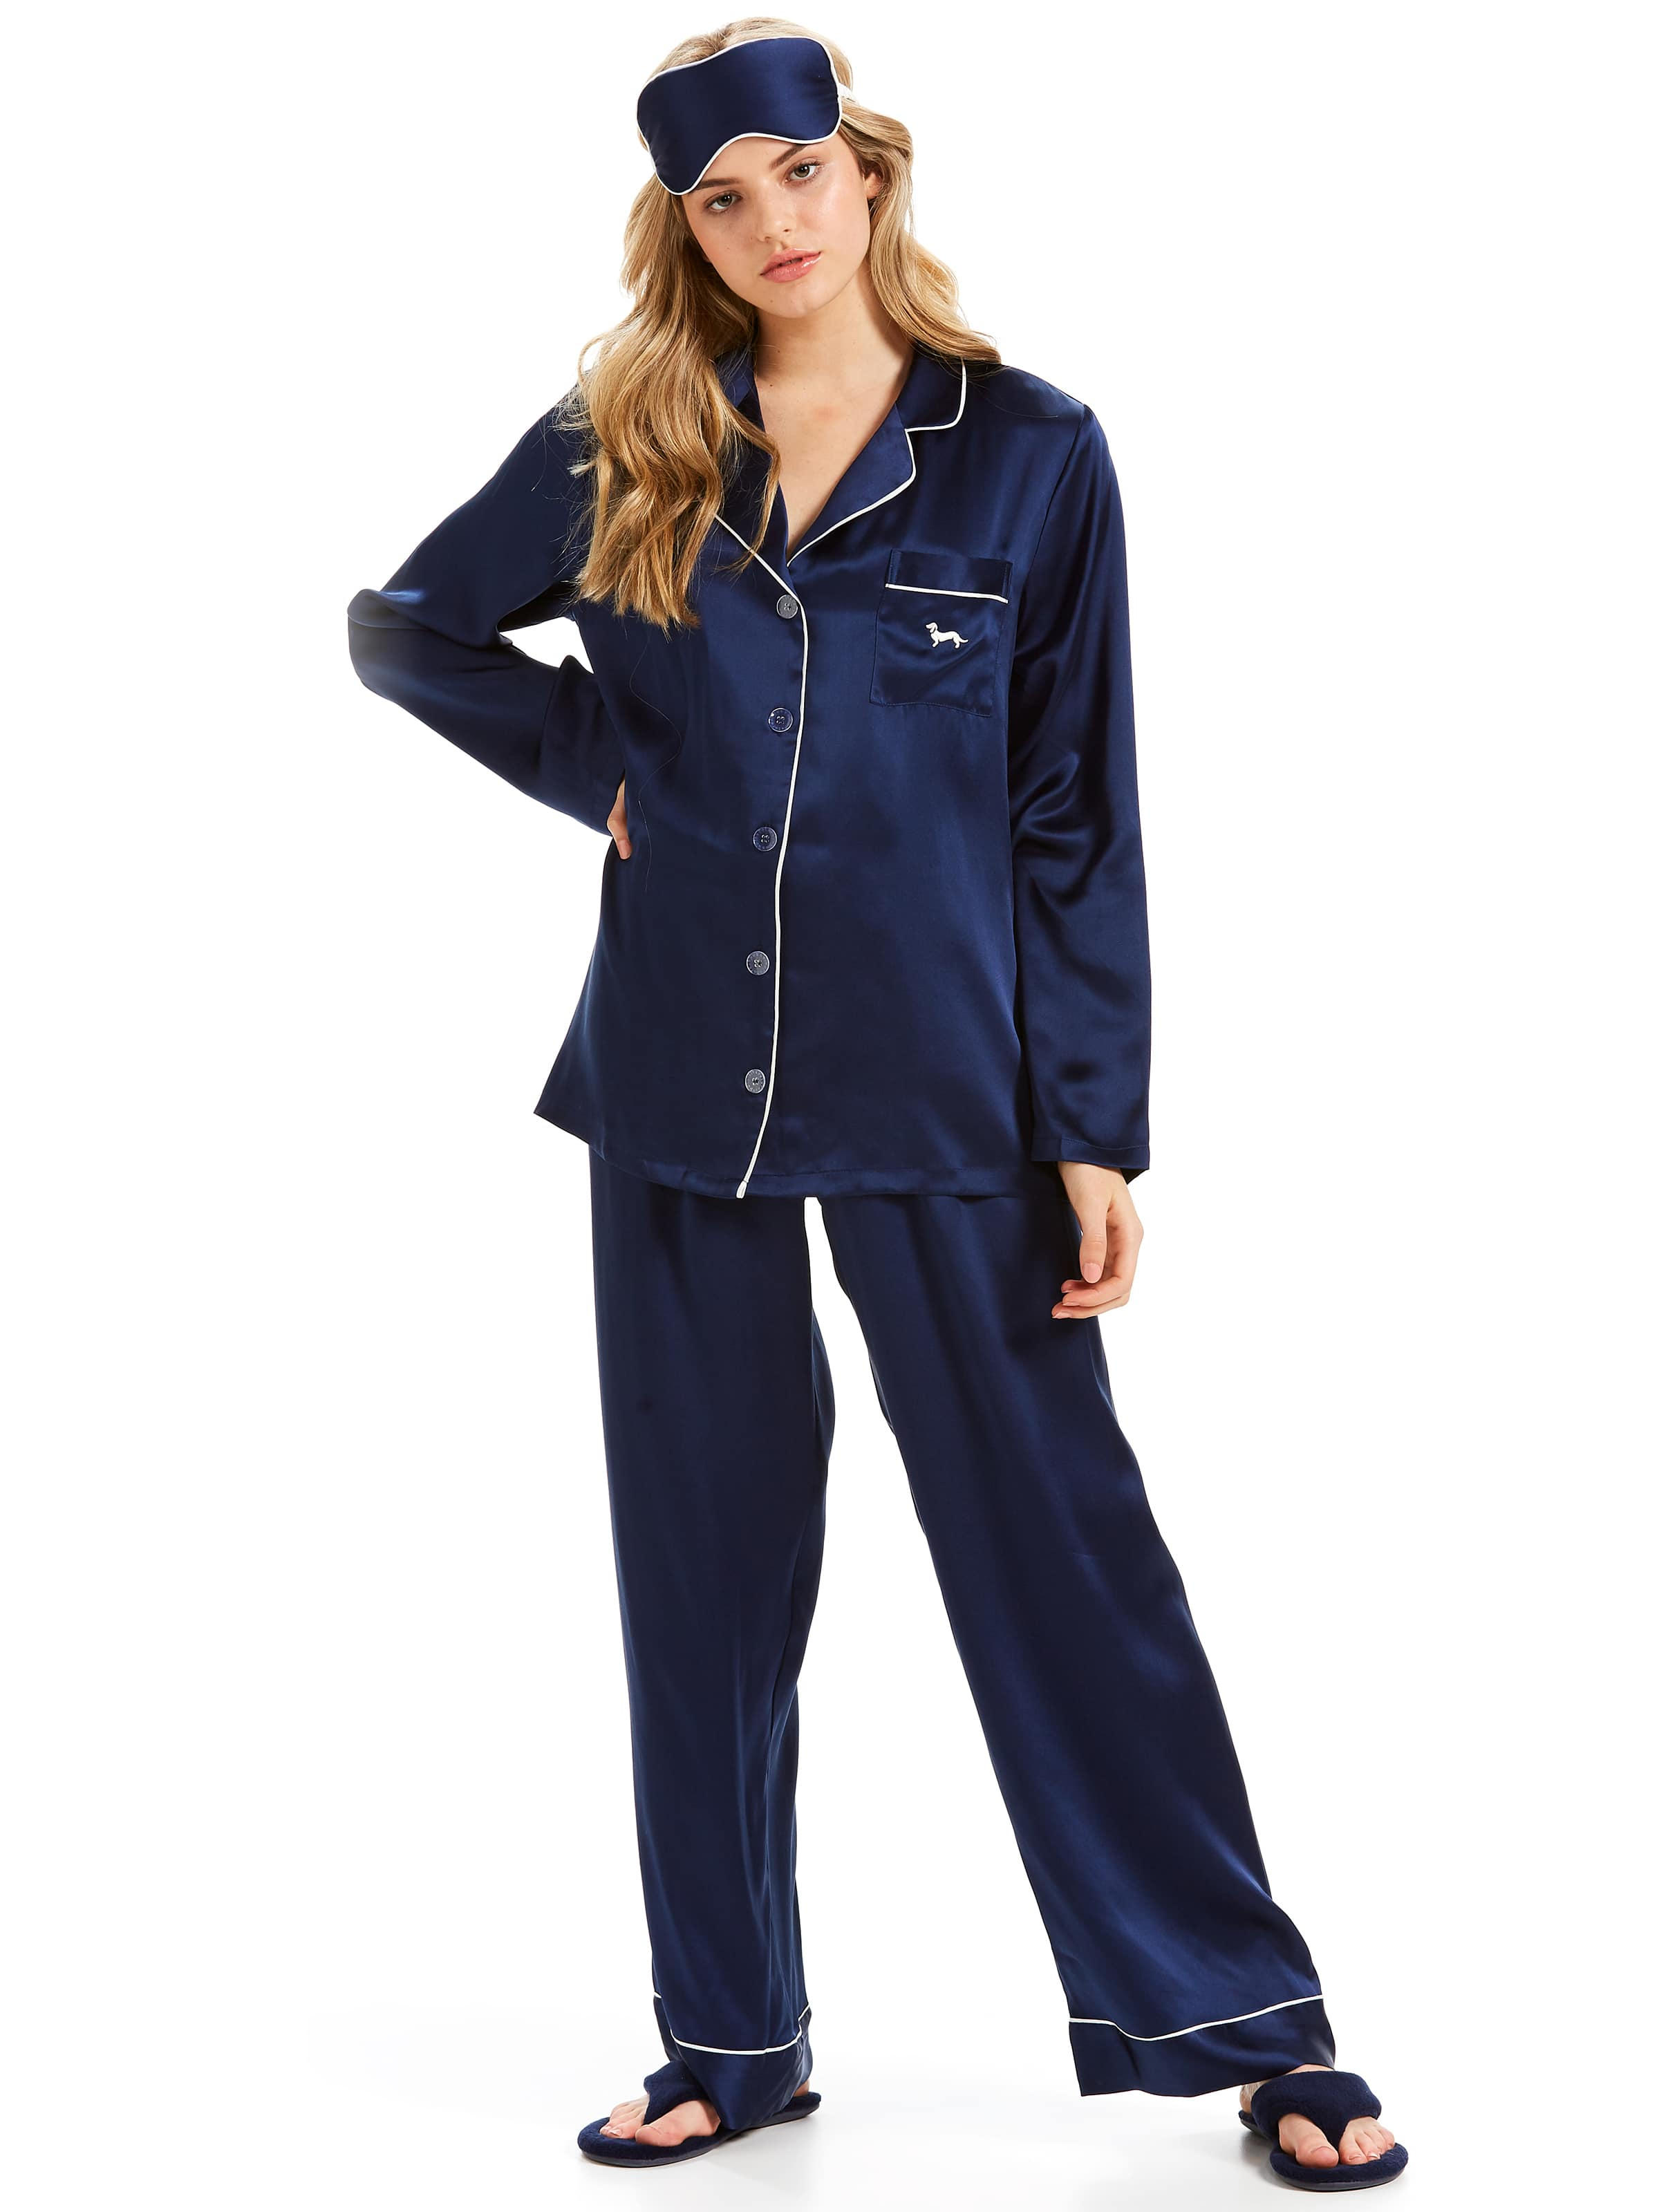 7d046c8501 Image for Luxe Silk Pj Set With Eyemask from Peter Alexander ...